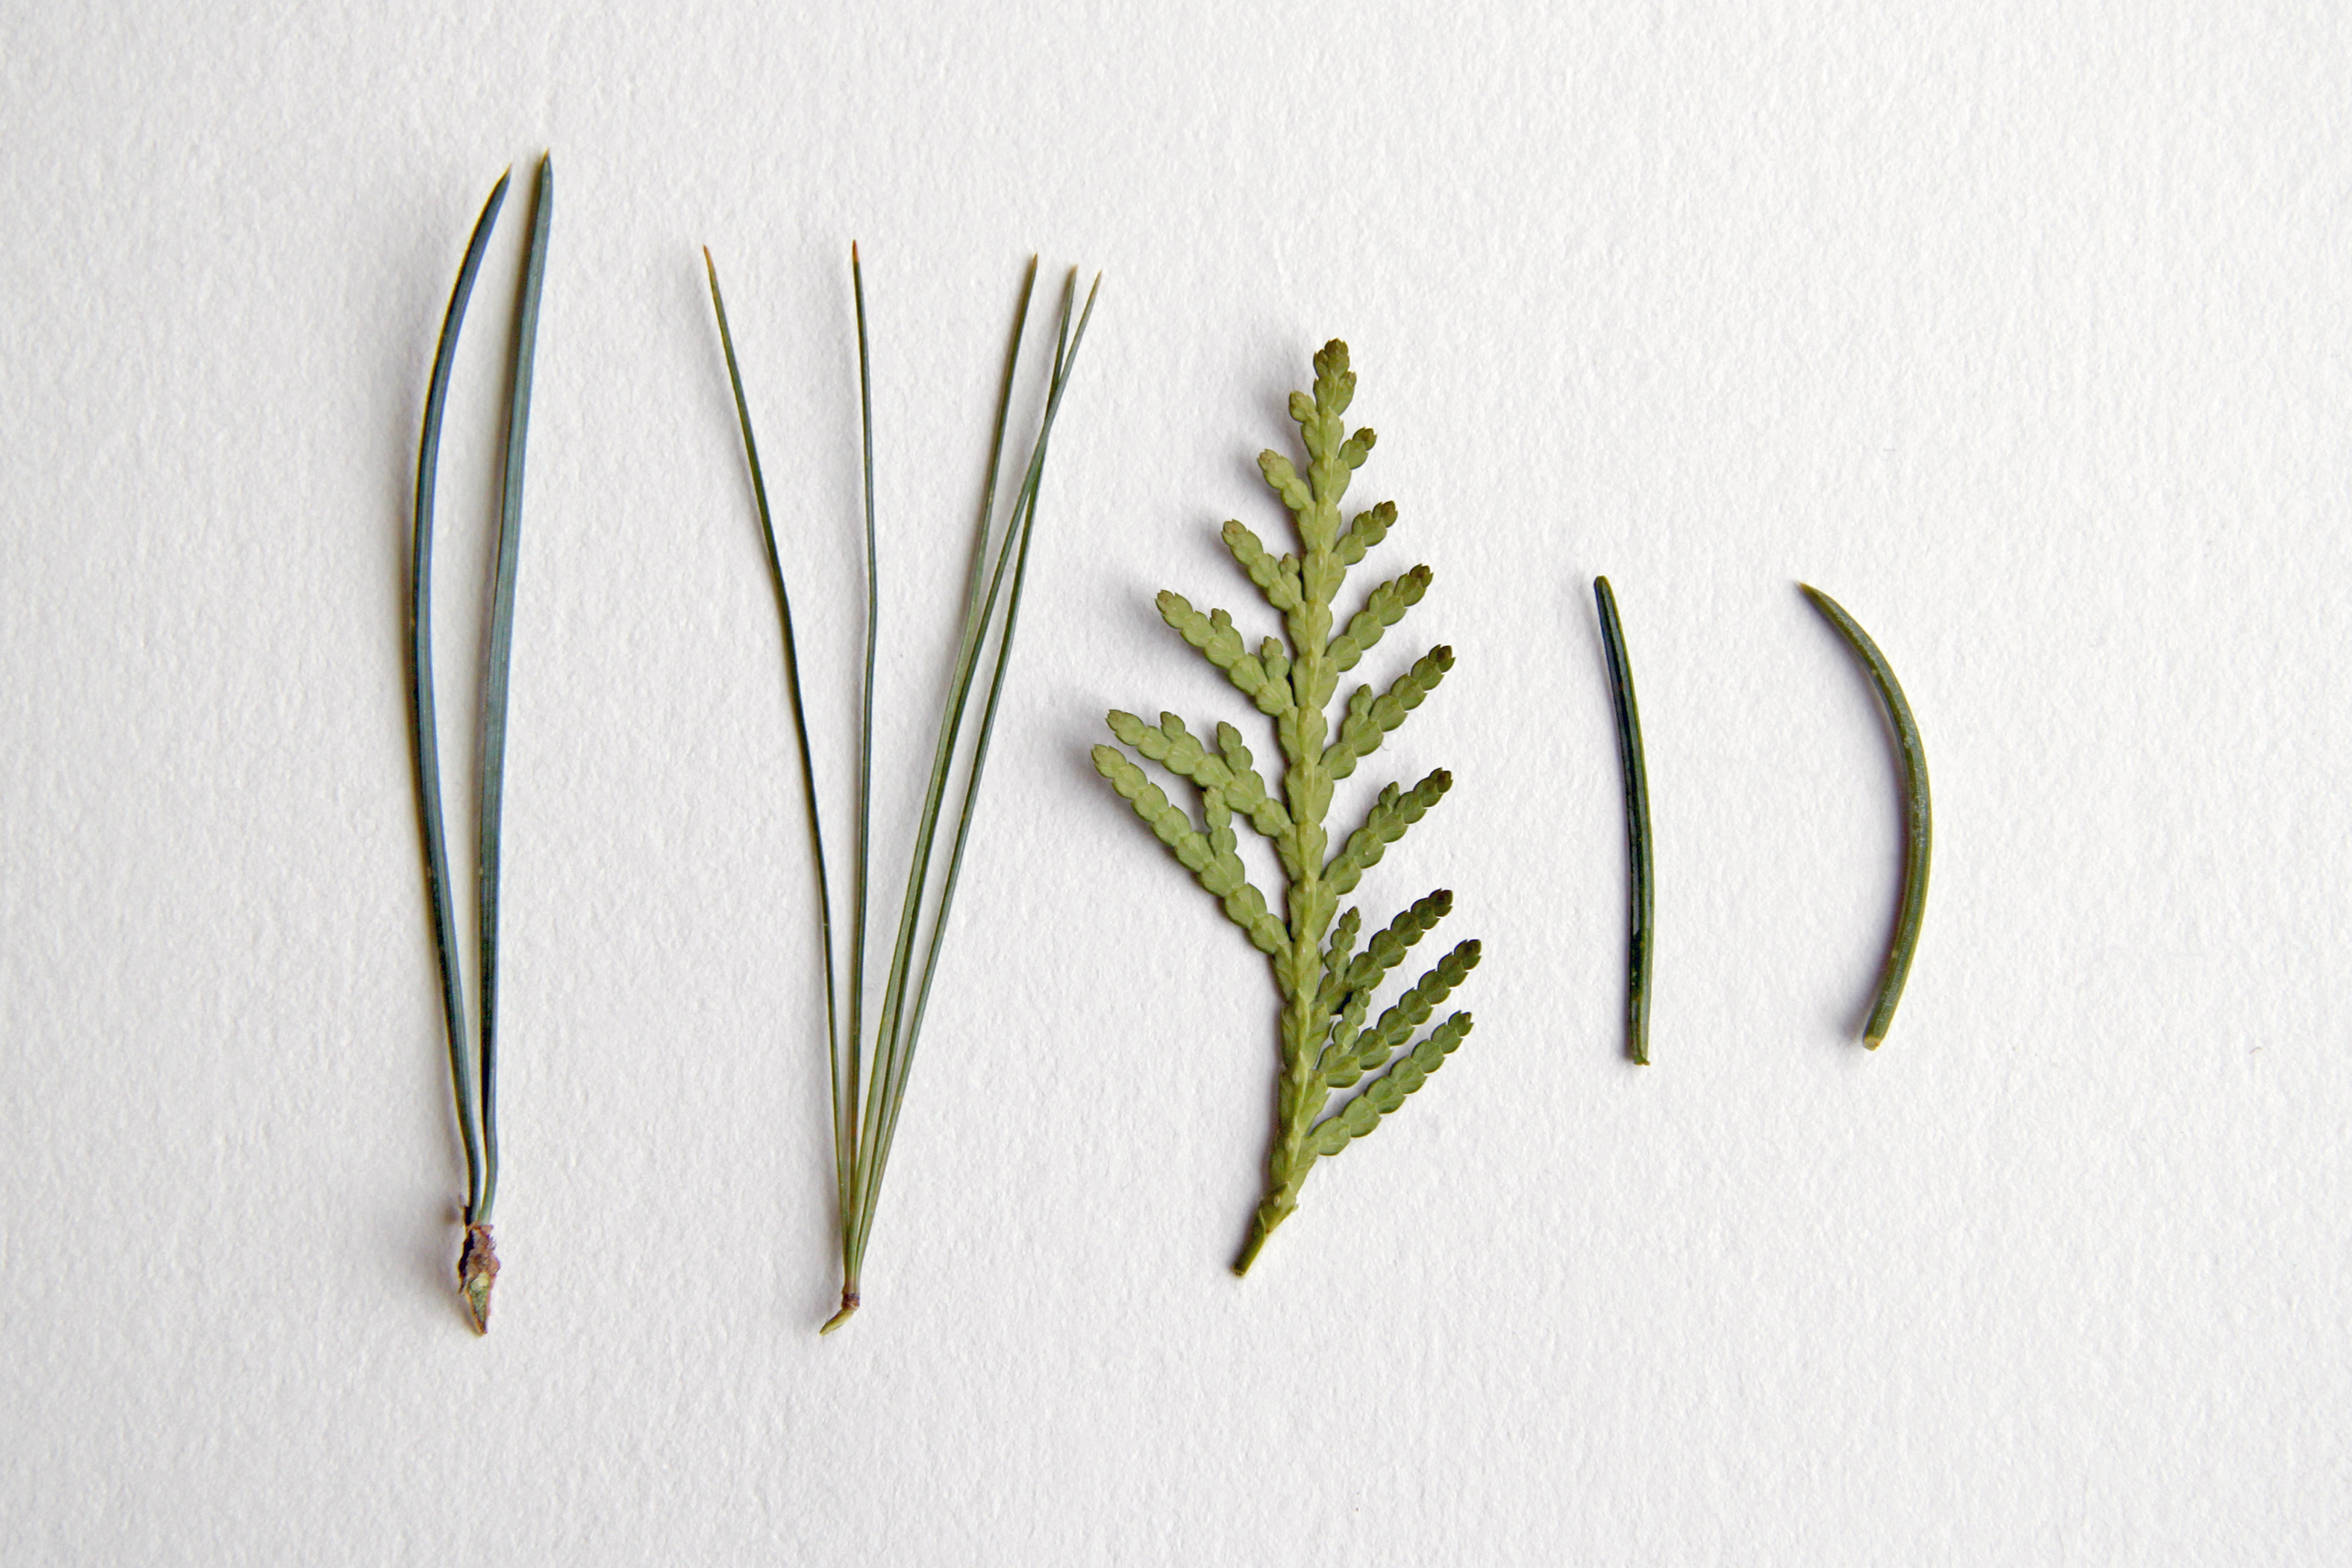 conifer needles